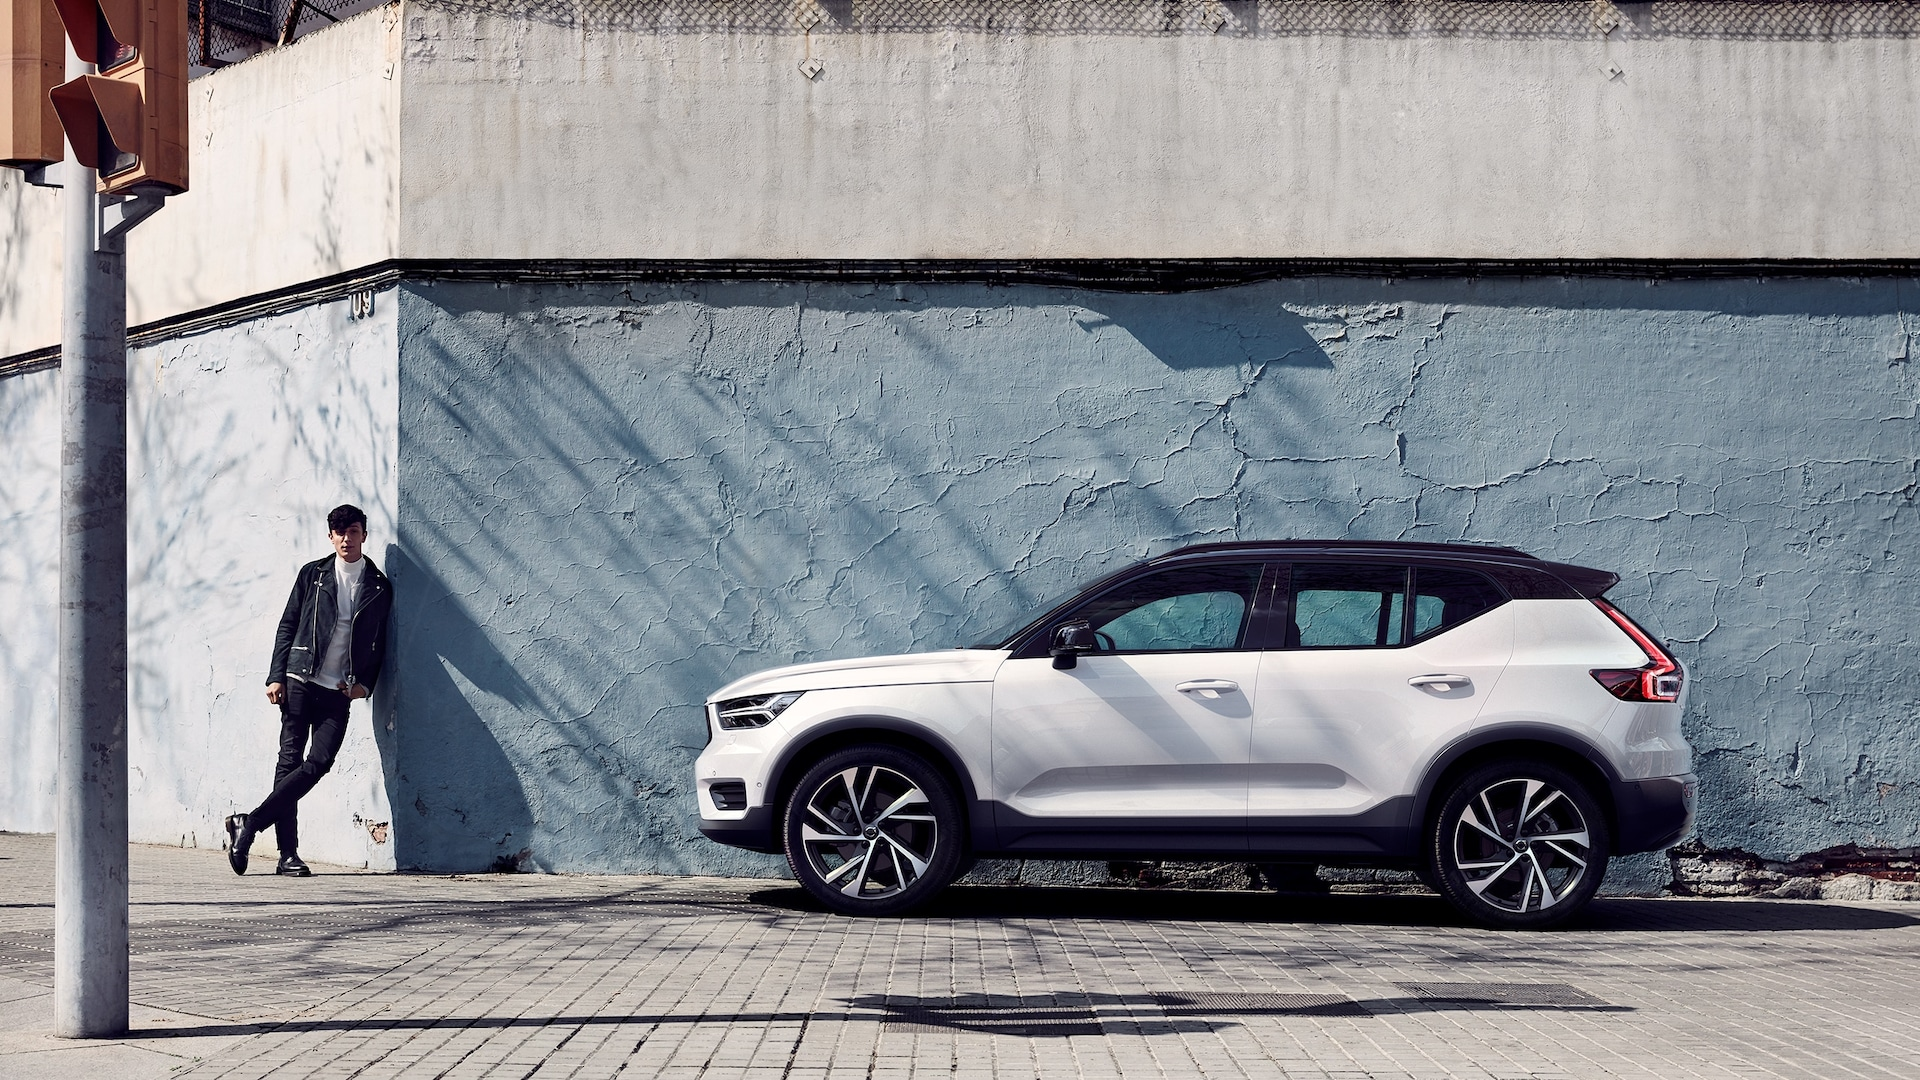 Compare the cadillac xt4, cadillac xt5, and volvo xc40 side by side to see differences in performance, pricing, features and more Volvo Xc40 Compact Suv Volvo Cars